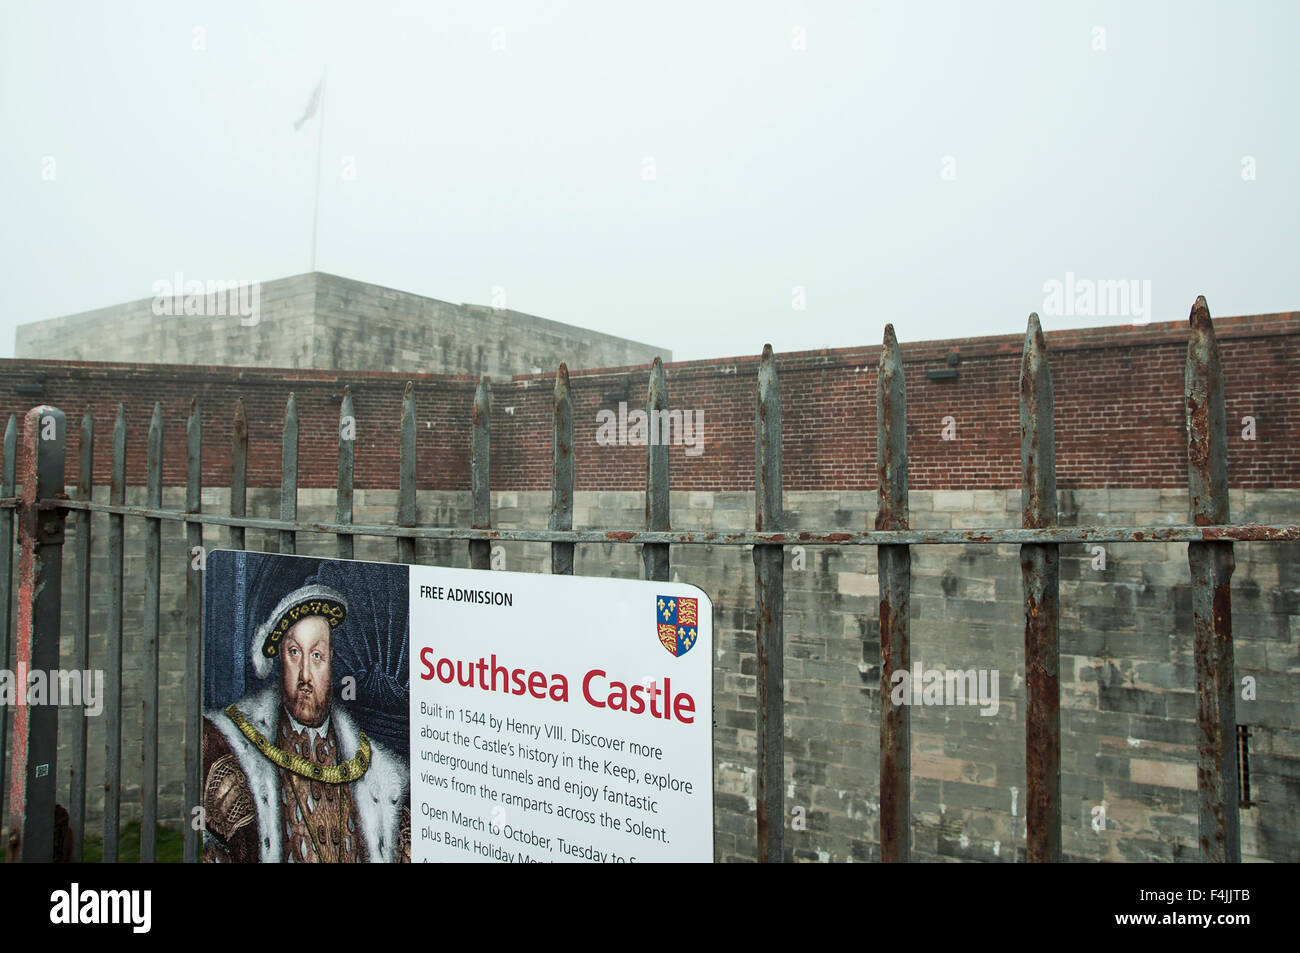 Cloudy and foggy day in Southsea Castle Portsmouth - Stock Image